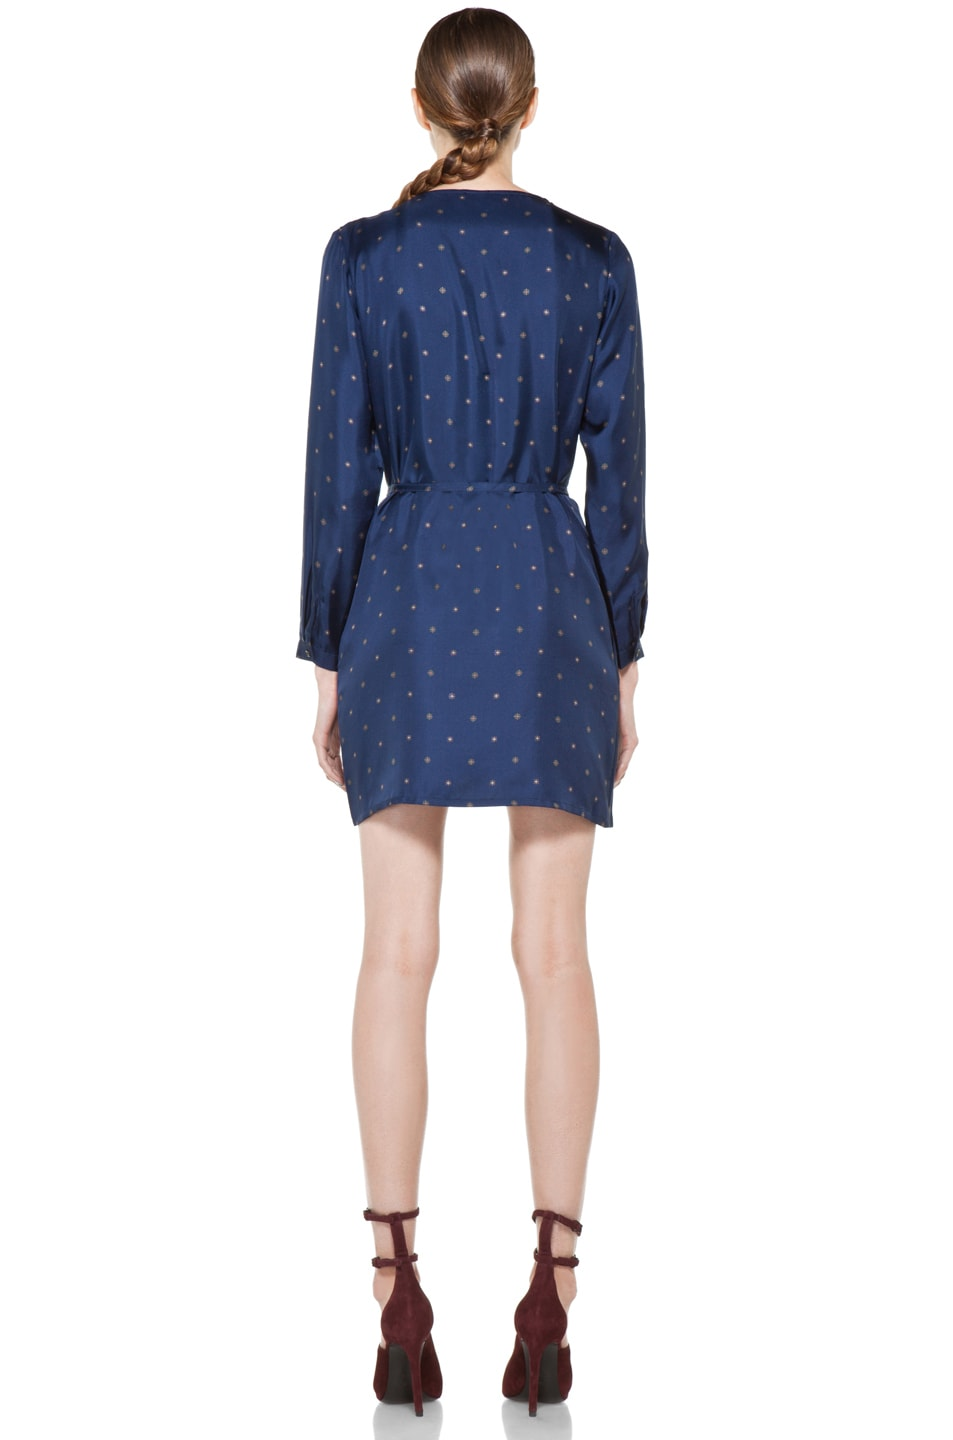 Image 4 of A.P.C. Twill de Soire Imprime Dress in Marine